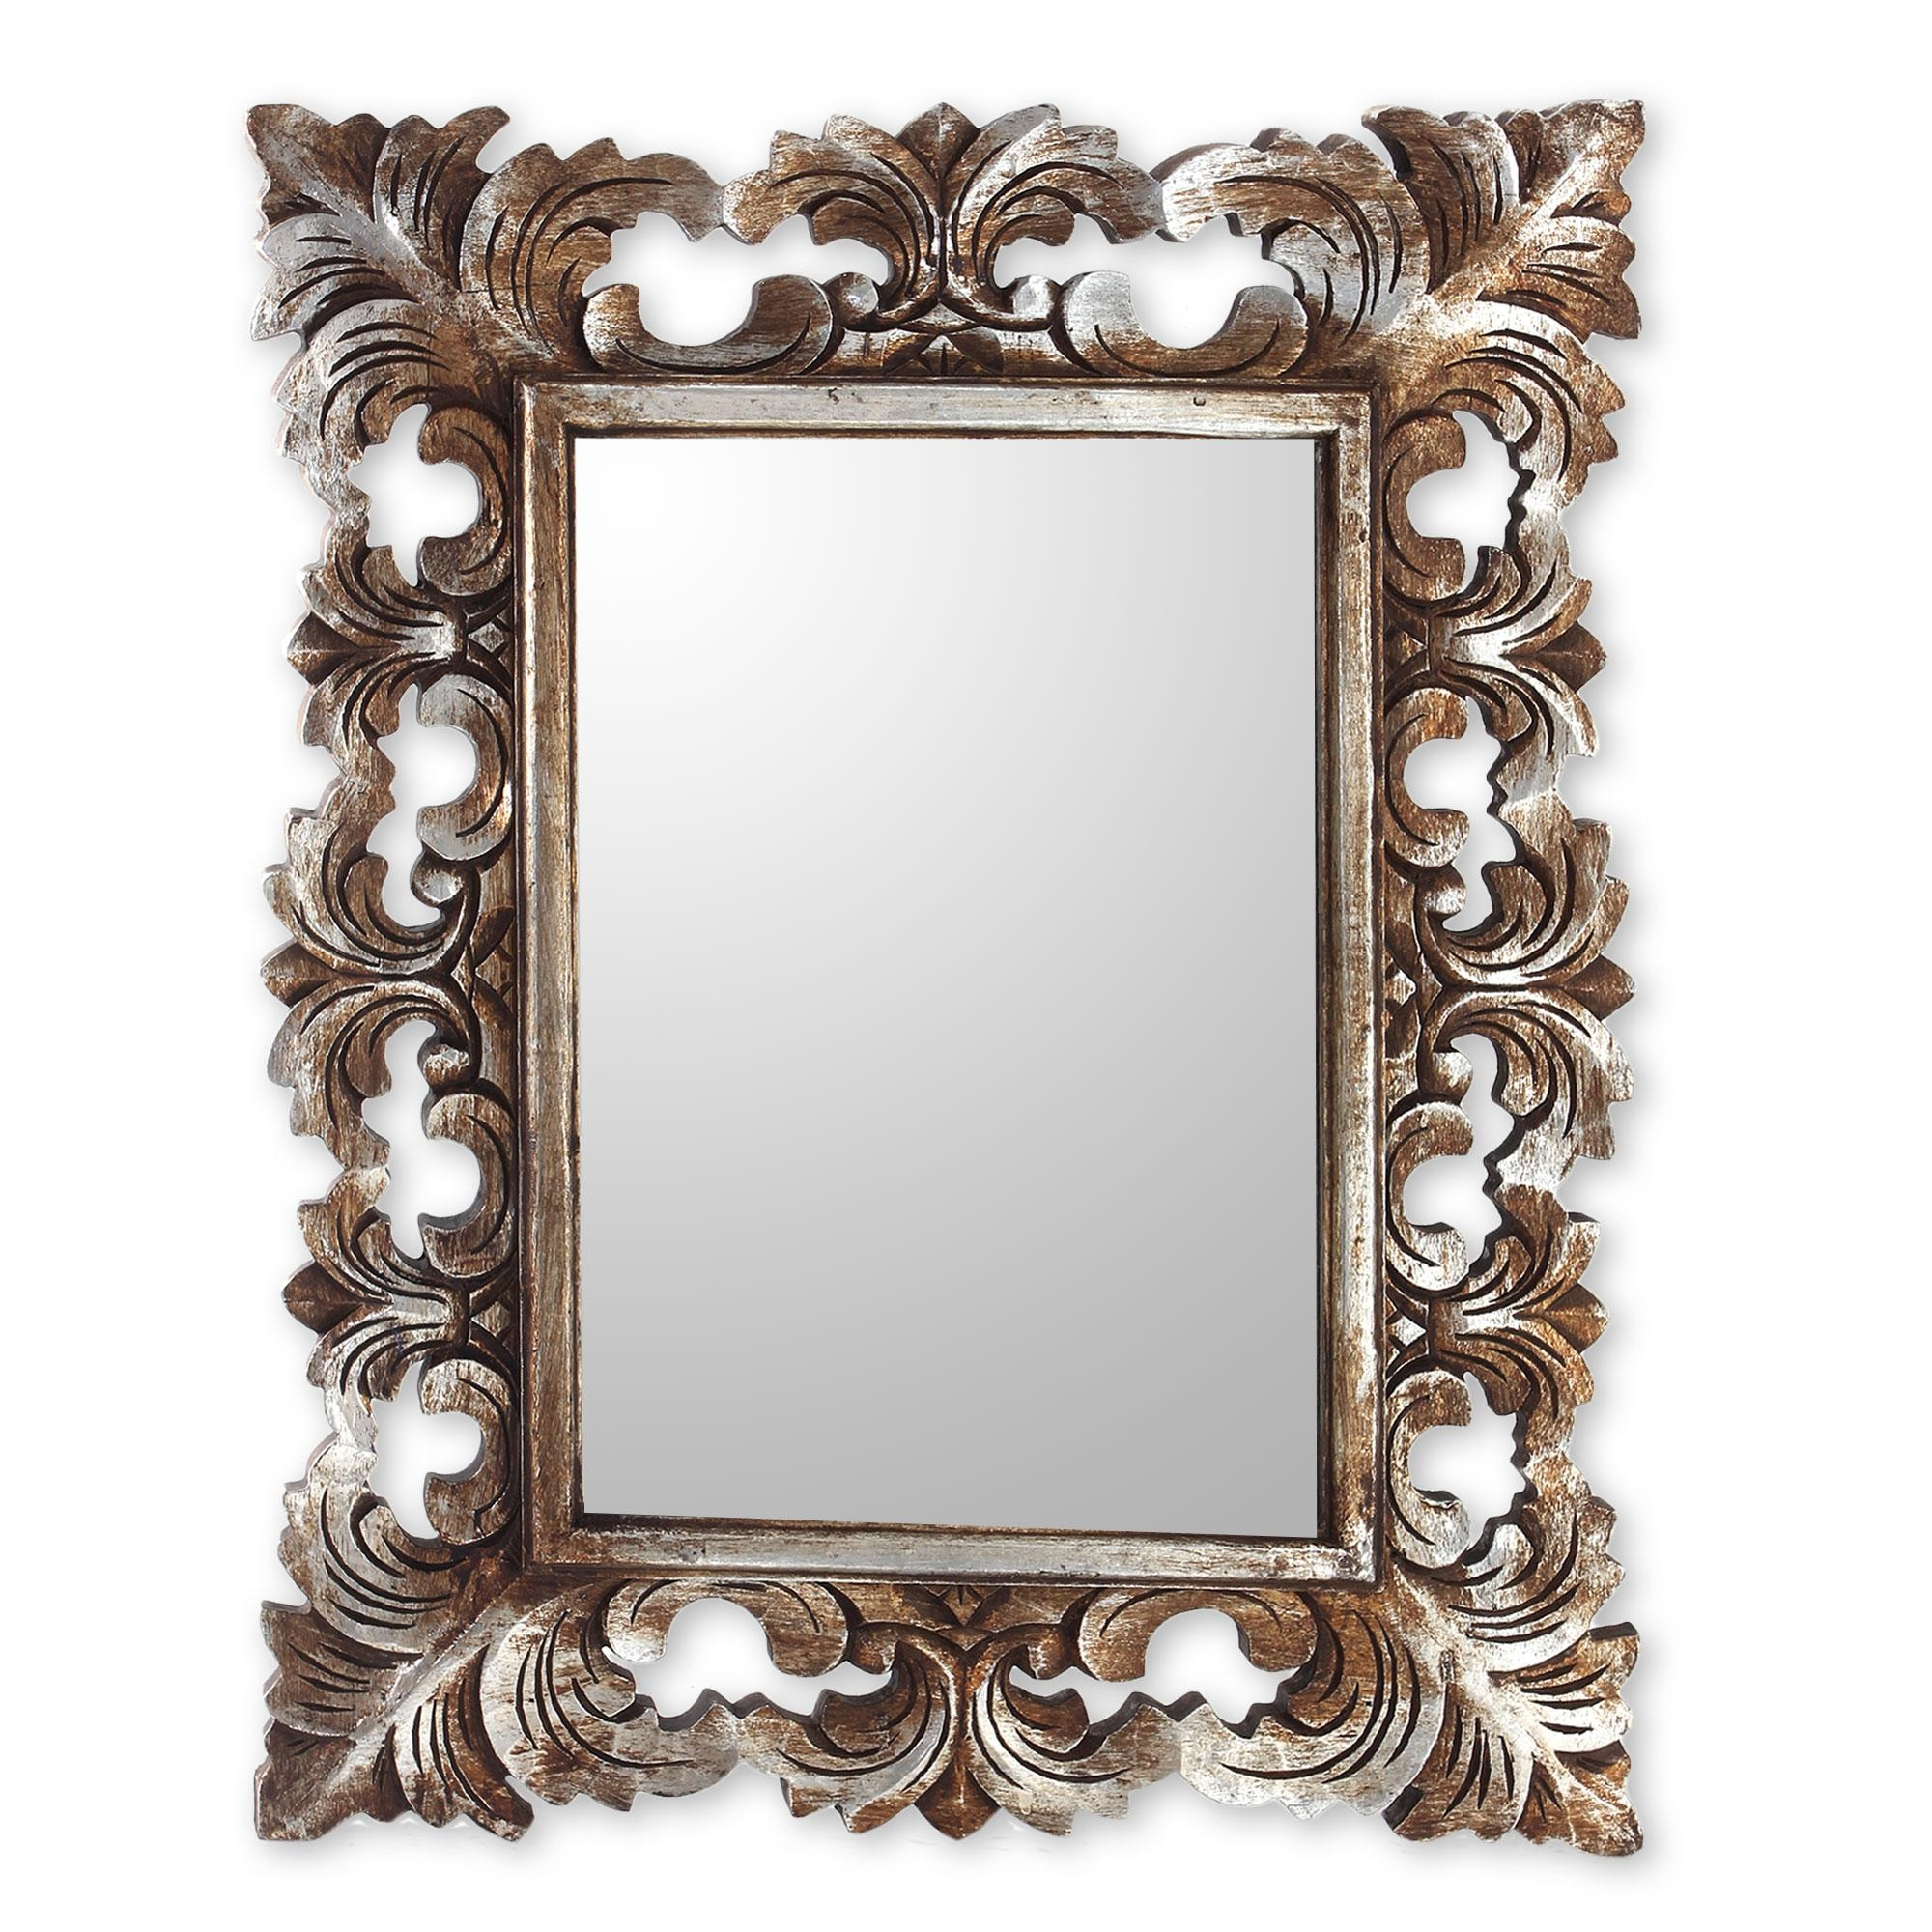 Hand Carved Wood Wall Mirror With Distressed Silver Finish – Padma With Regard To Distressed Silver Mirror (View 6 of 20)